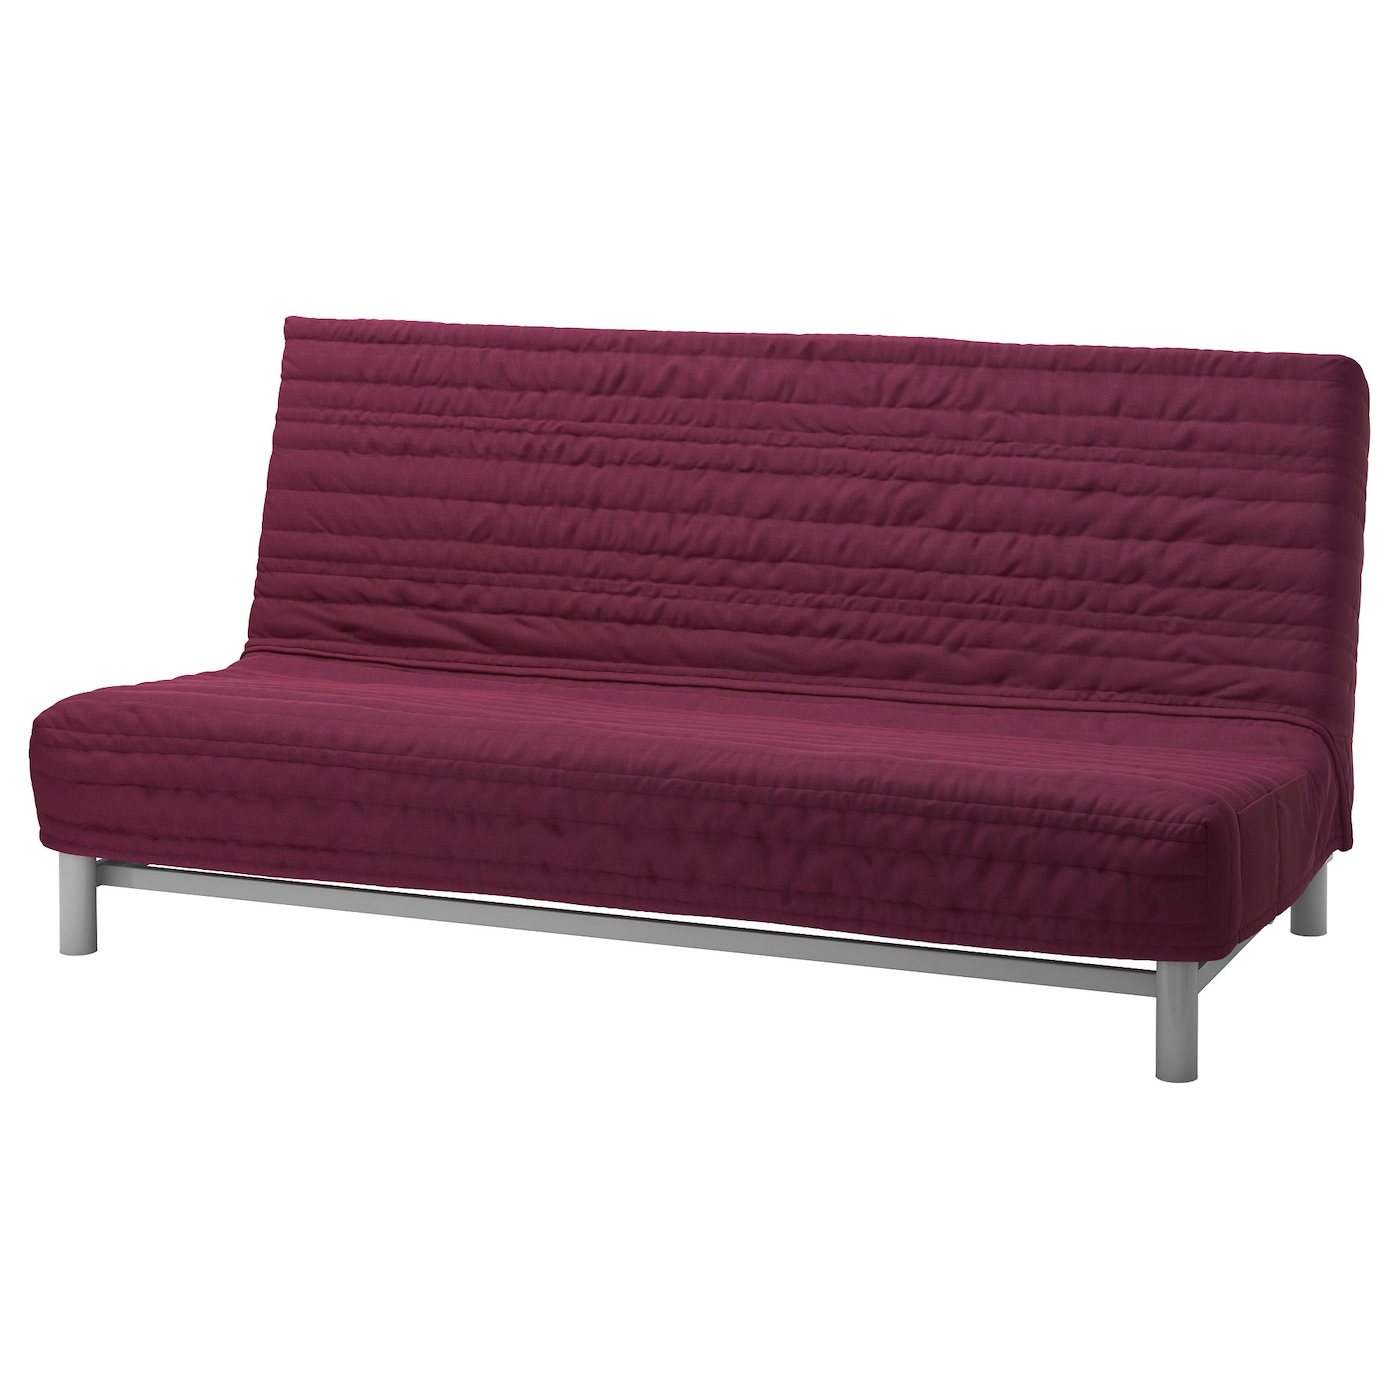 beddinge three seat sofa bed cover knisa cerise ikea ForSofa Bed Cover